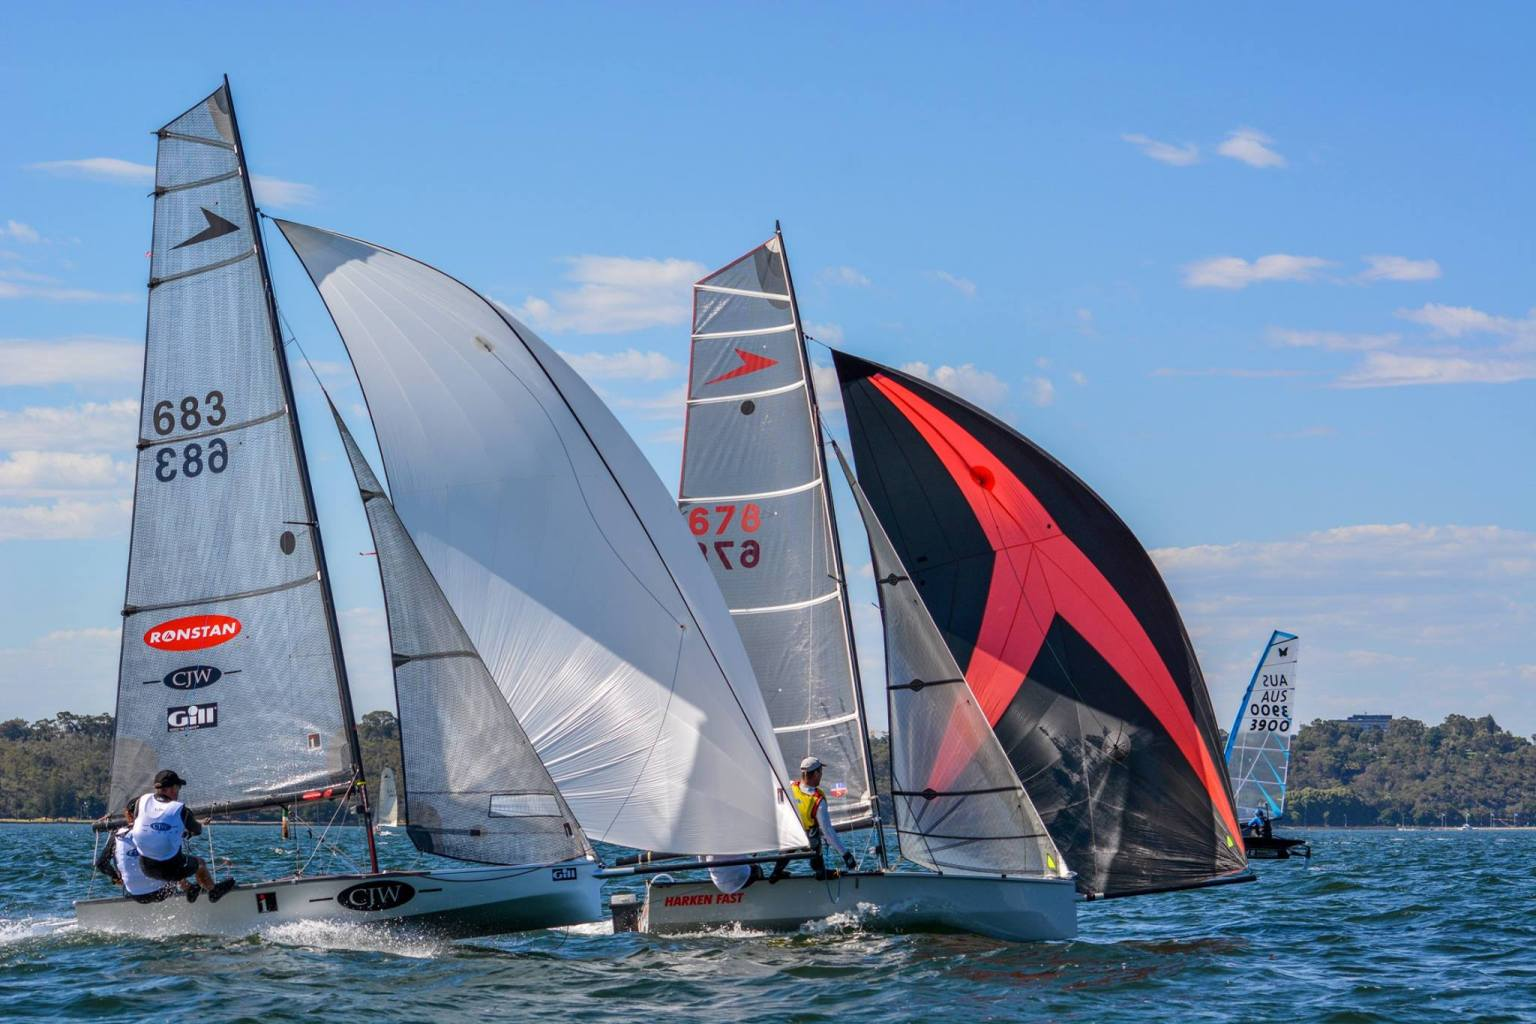 Squishy Yacht Buoys : Around the Buoys 20th February 2016 - Geraldton Yacht Club - SportsTG